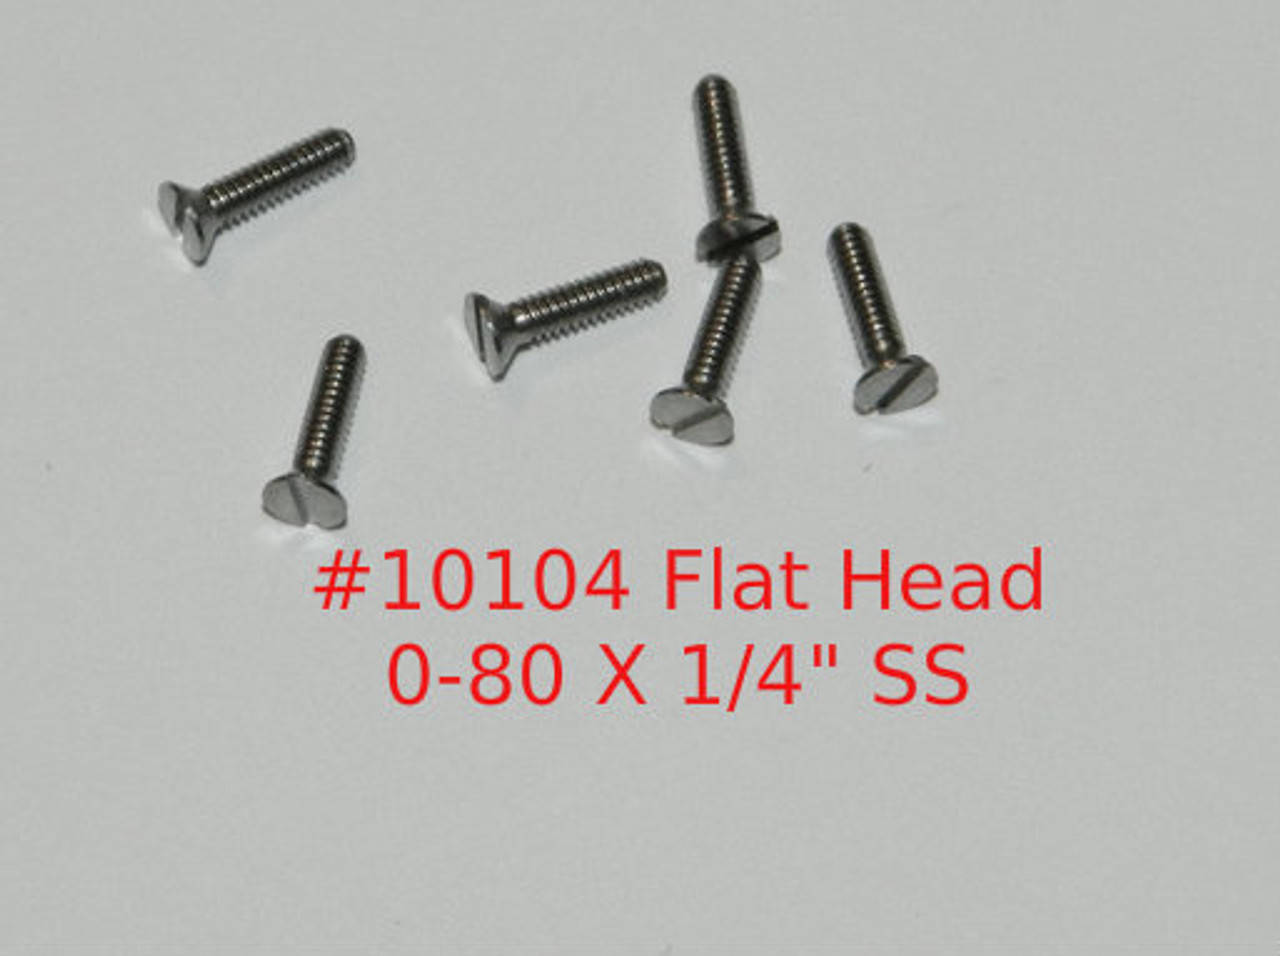 """0-80  2A Thread Flat Head, 82 degree,  Slotted Machine Screw, Length 1/4""""full thread stainless steel #303 Price is for 100 pieces. polished.  This screw is made on precision screw machines it is not a cold headed screw.  All parts are certified and traceable.  We can make parts to your design with very few limitations.  We carry a wide range of in stock fasteners for more information email us at; sales@minitaps.com"""